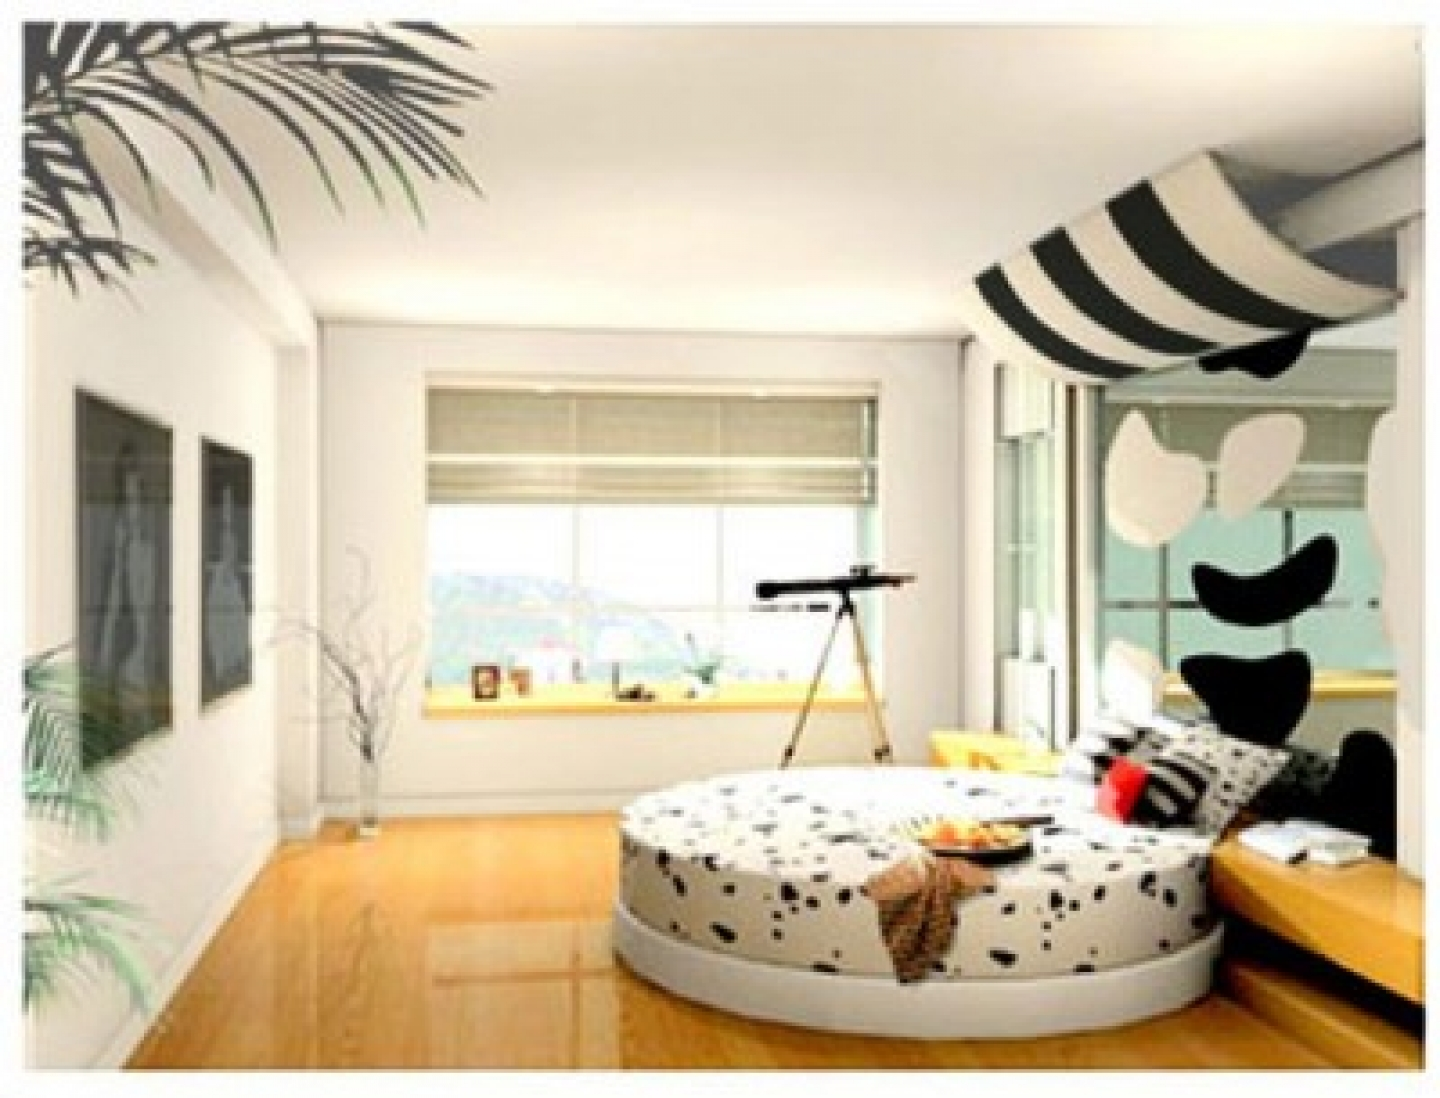 Bedroom designs for girls black - Black And White Bedroom Designs For Girls Photo 3